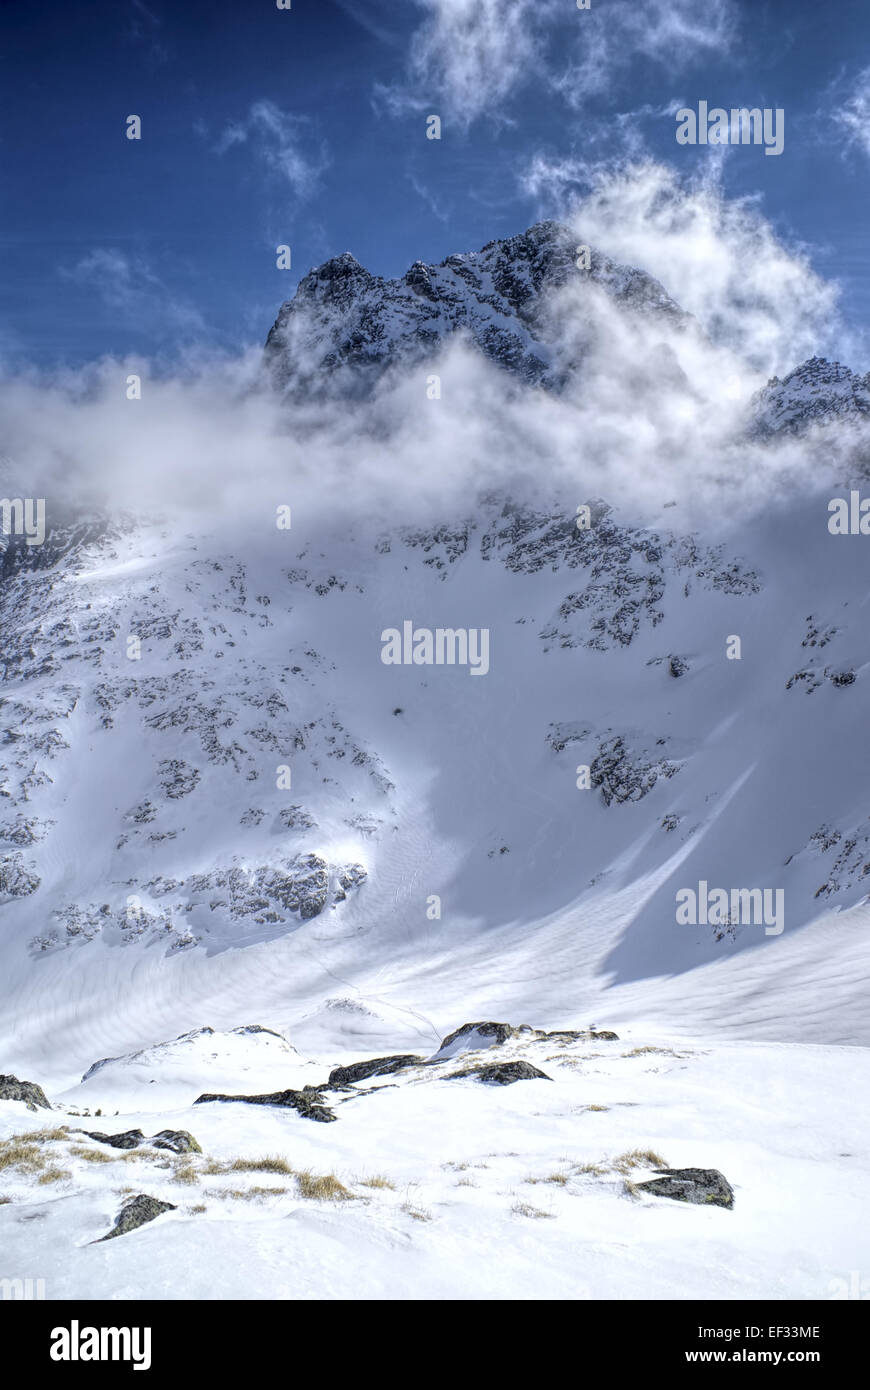 Picturesque view of sun illuminating snowy slopes in high mountains - Stock Image